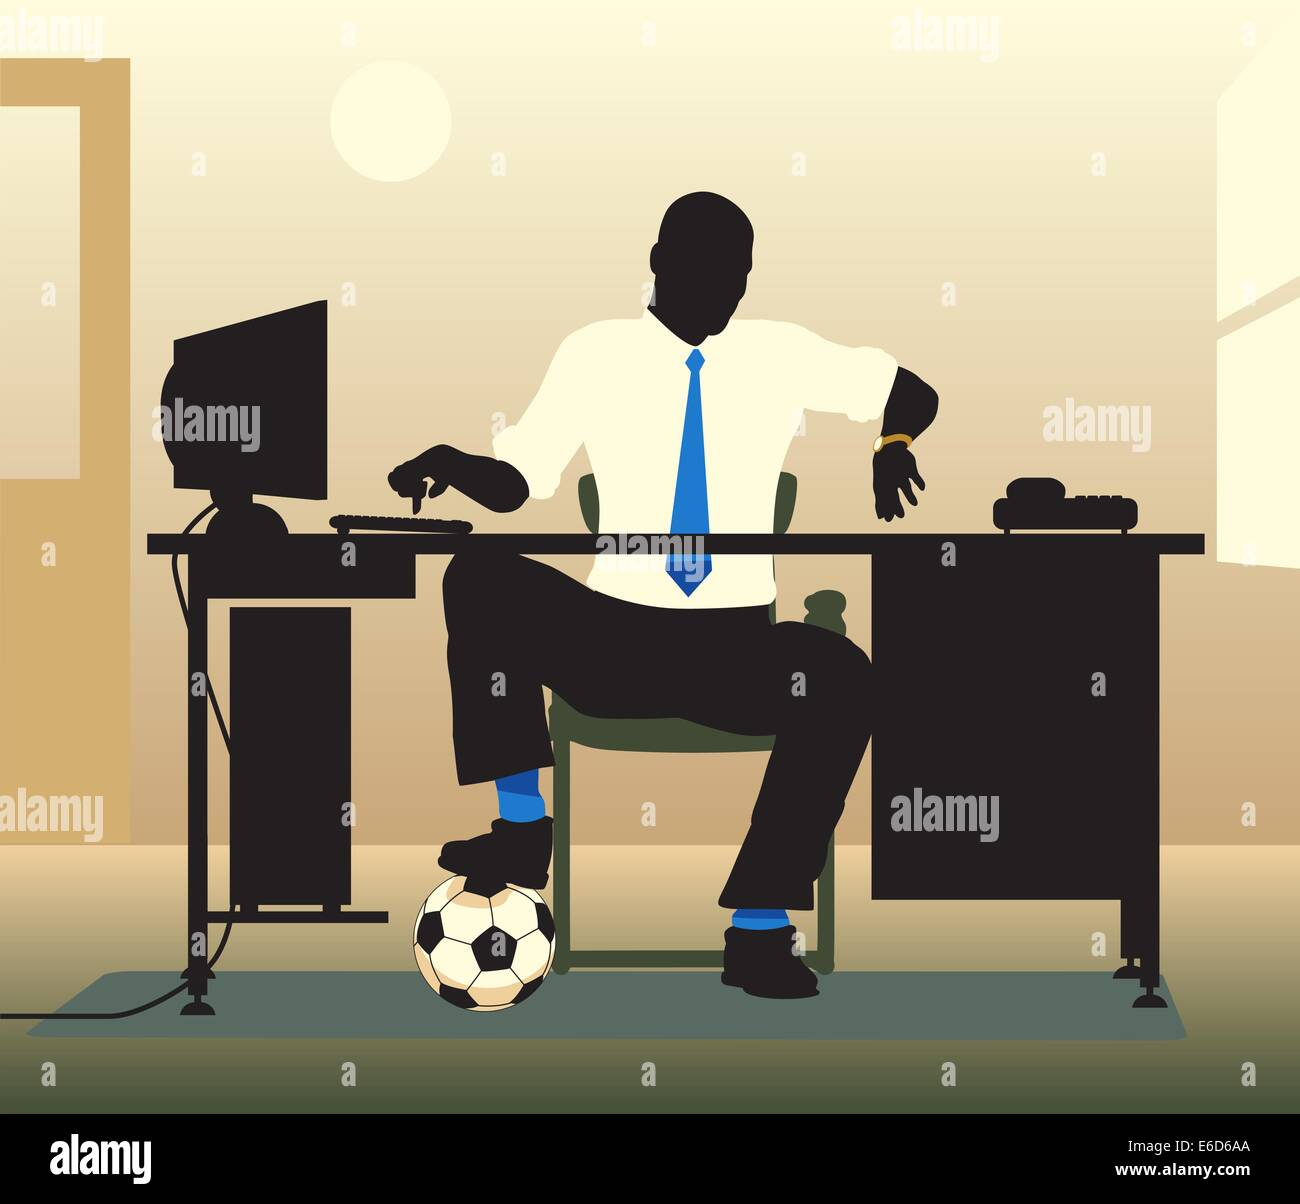 Editable vector illustration of an office worker with a football looking at his watch - Stock Vector